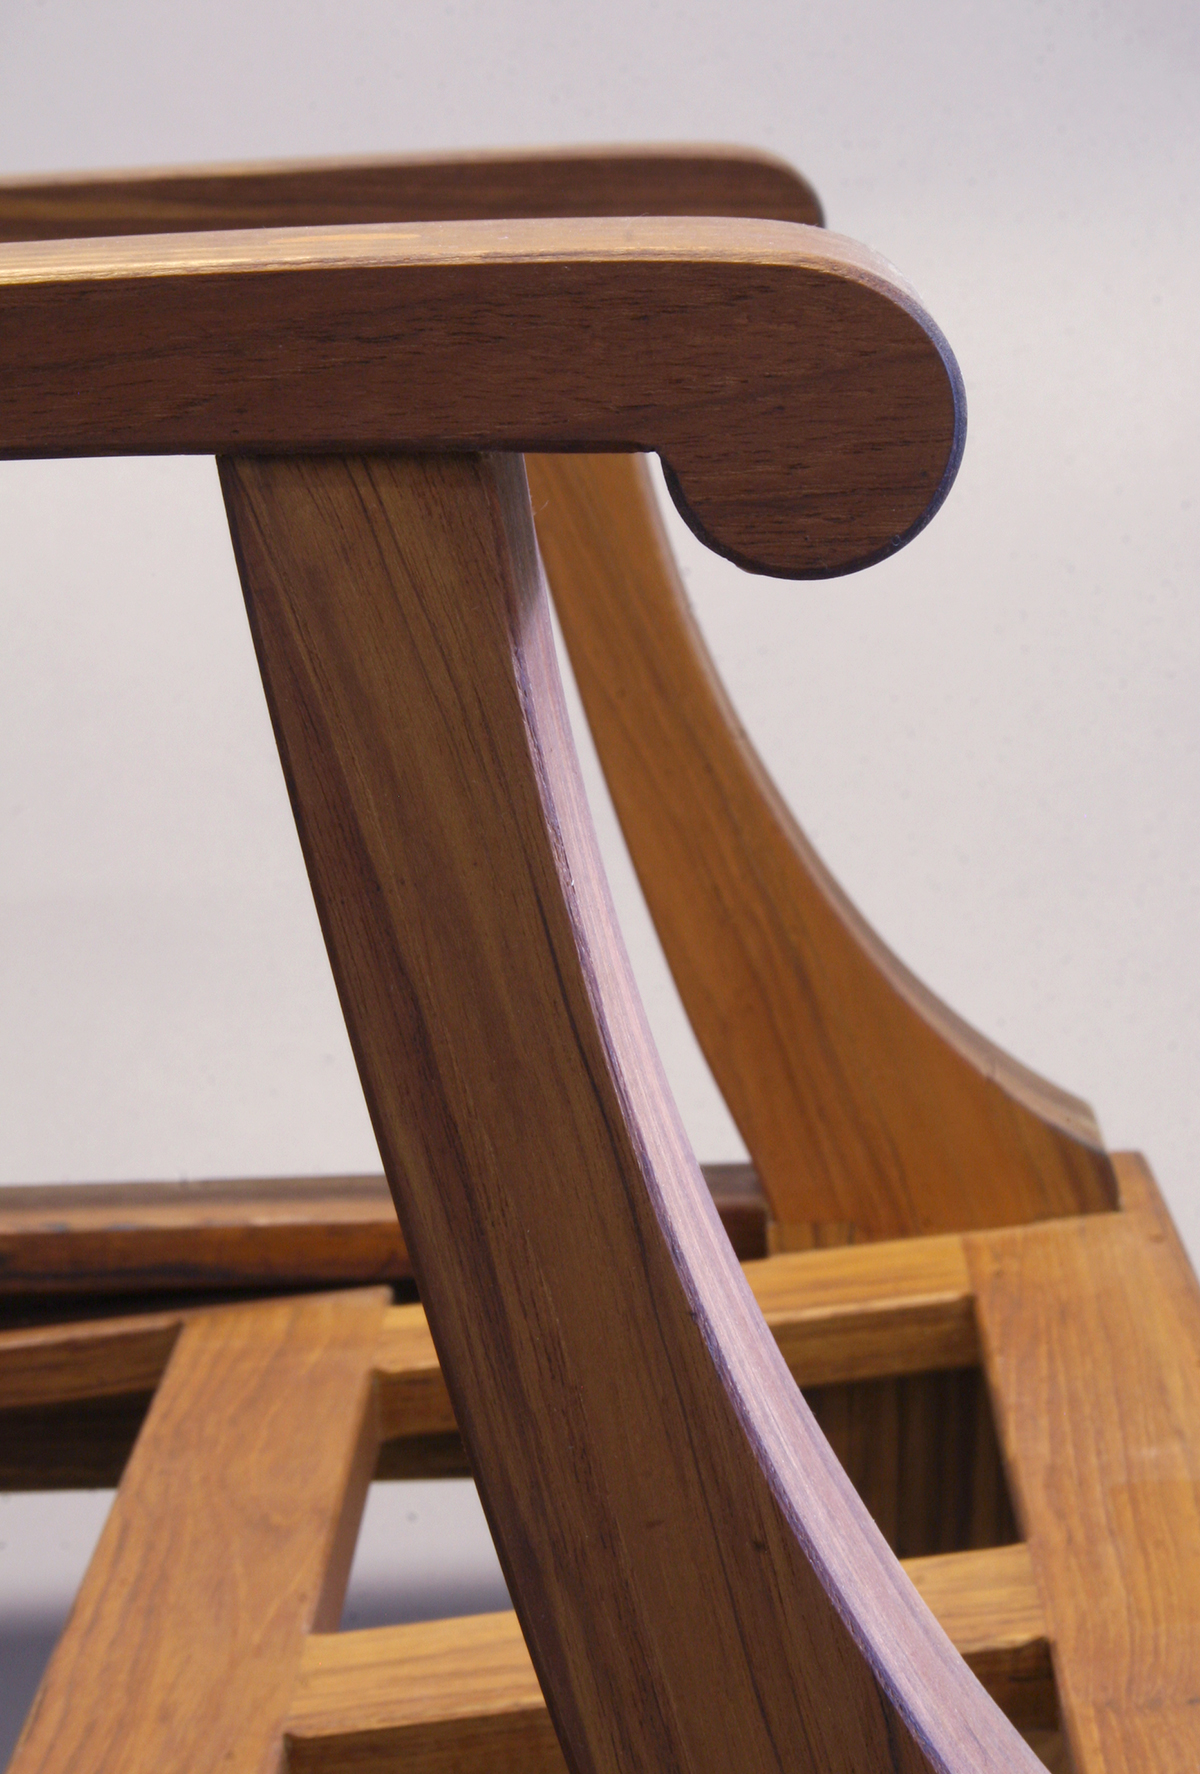 solid_wood_chair_frame.jpg